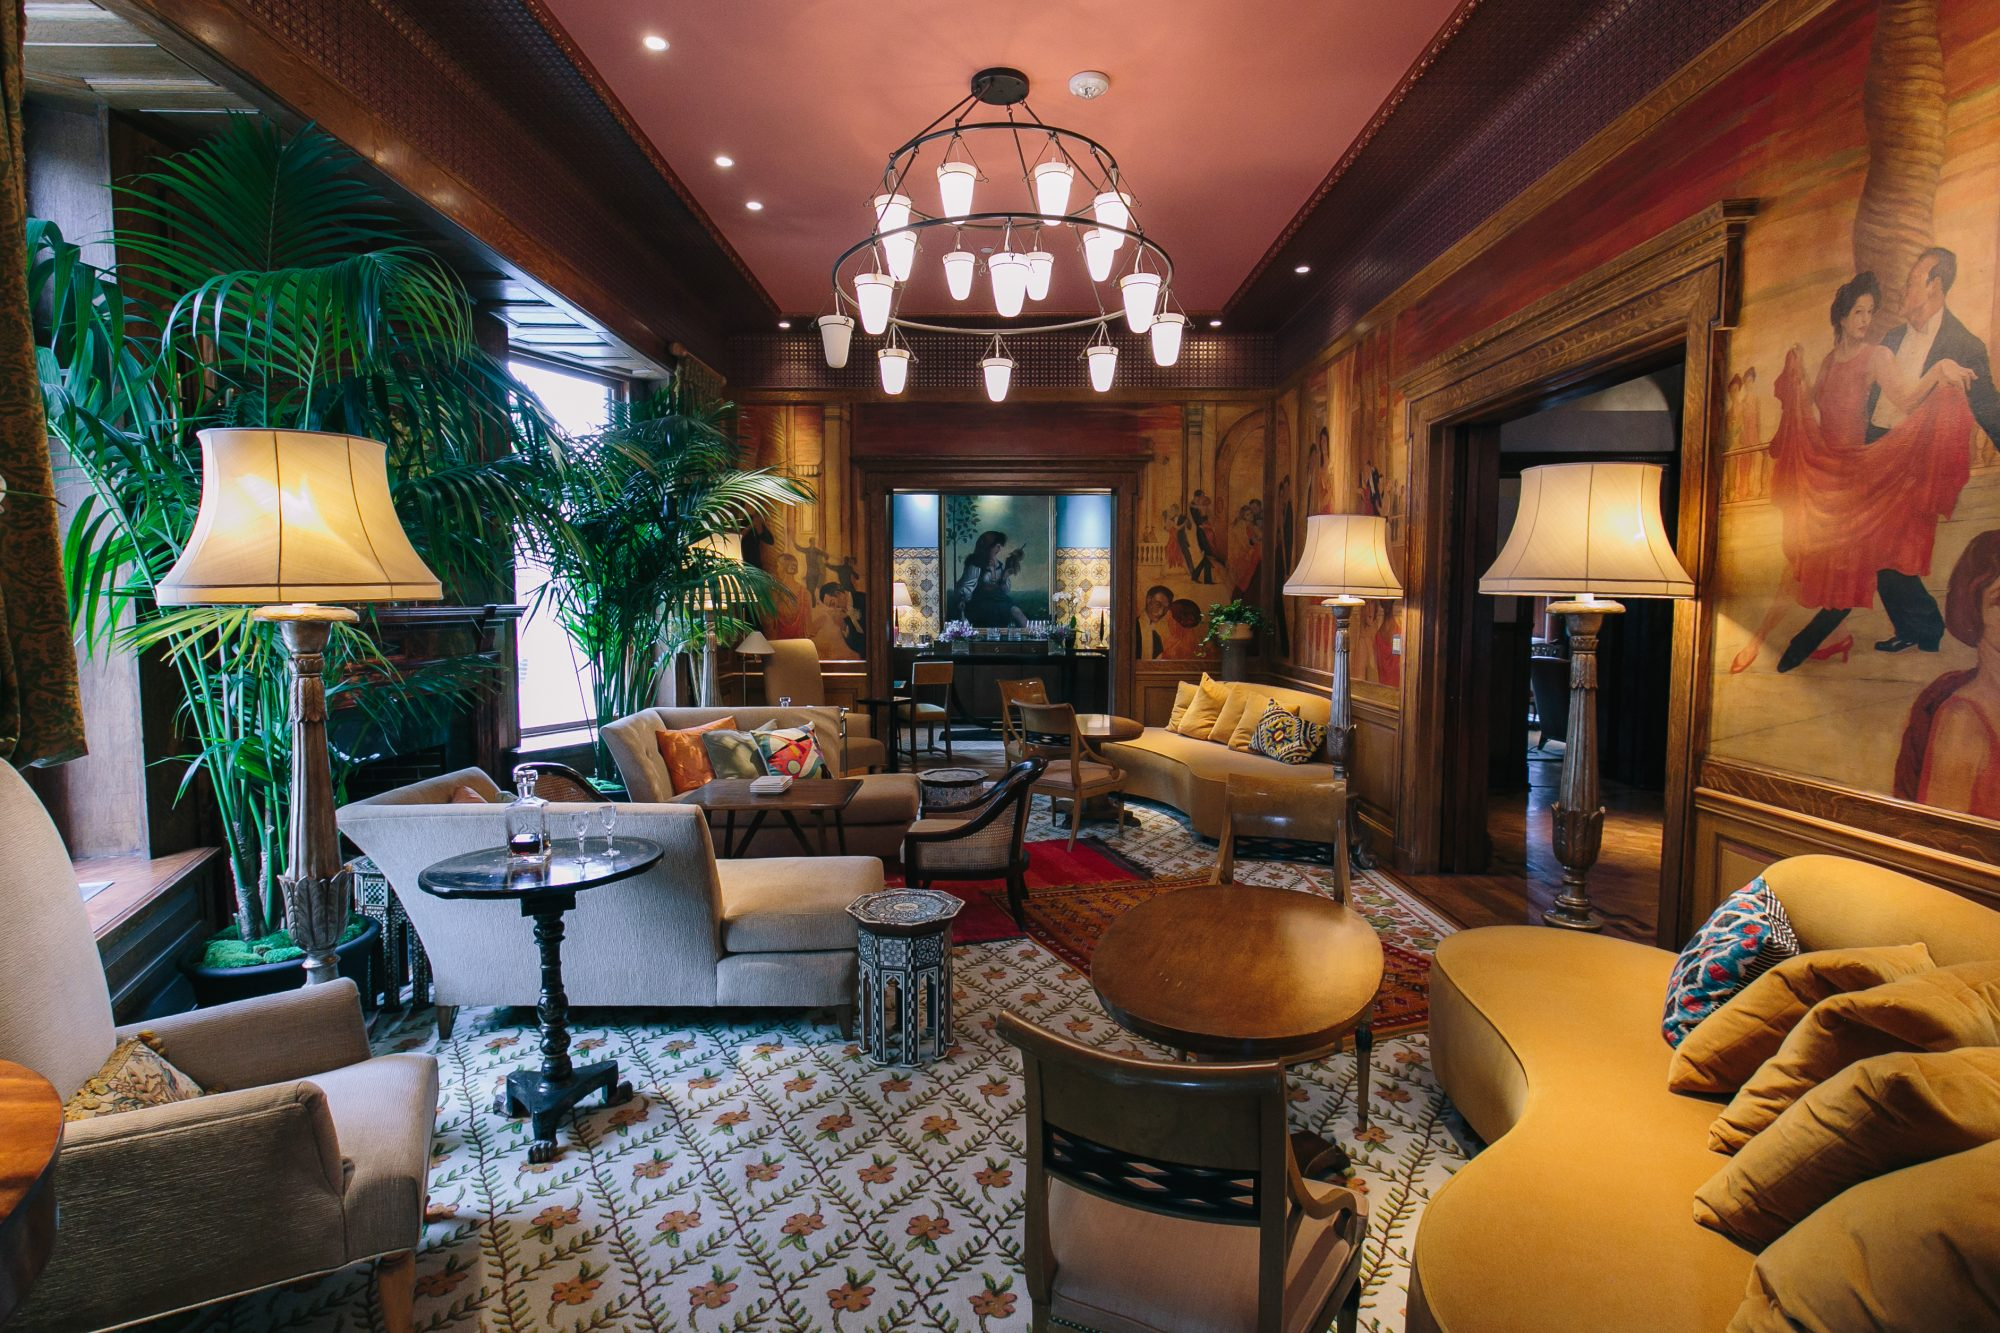 The Ivy Hotel in Baltimore, Maryland